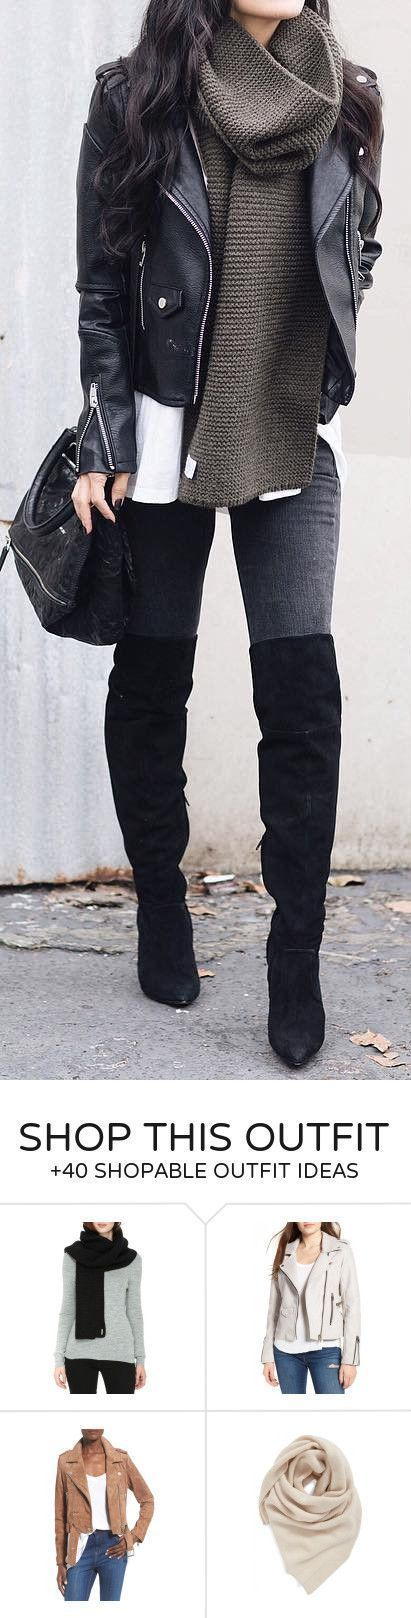 Style Combine Winter 2018 5 beste Outfits